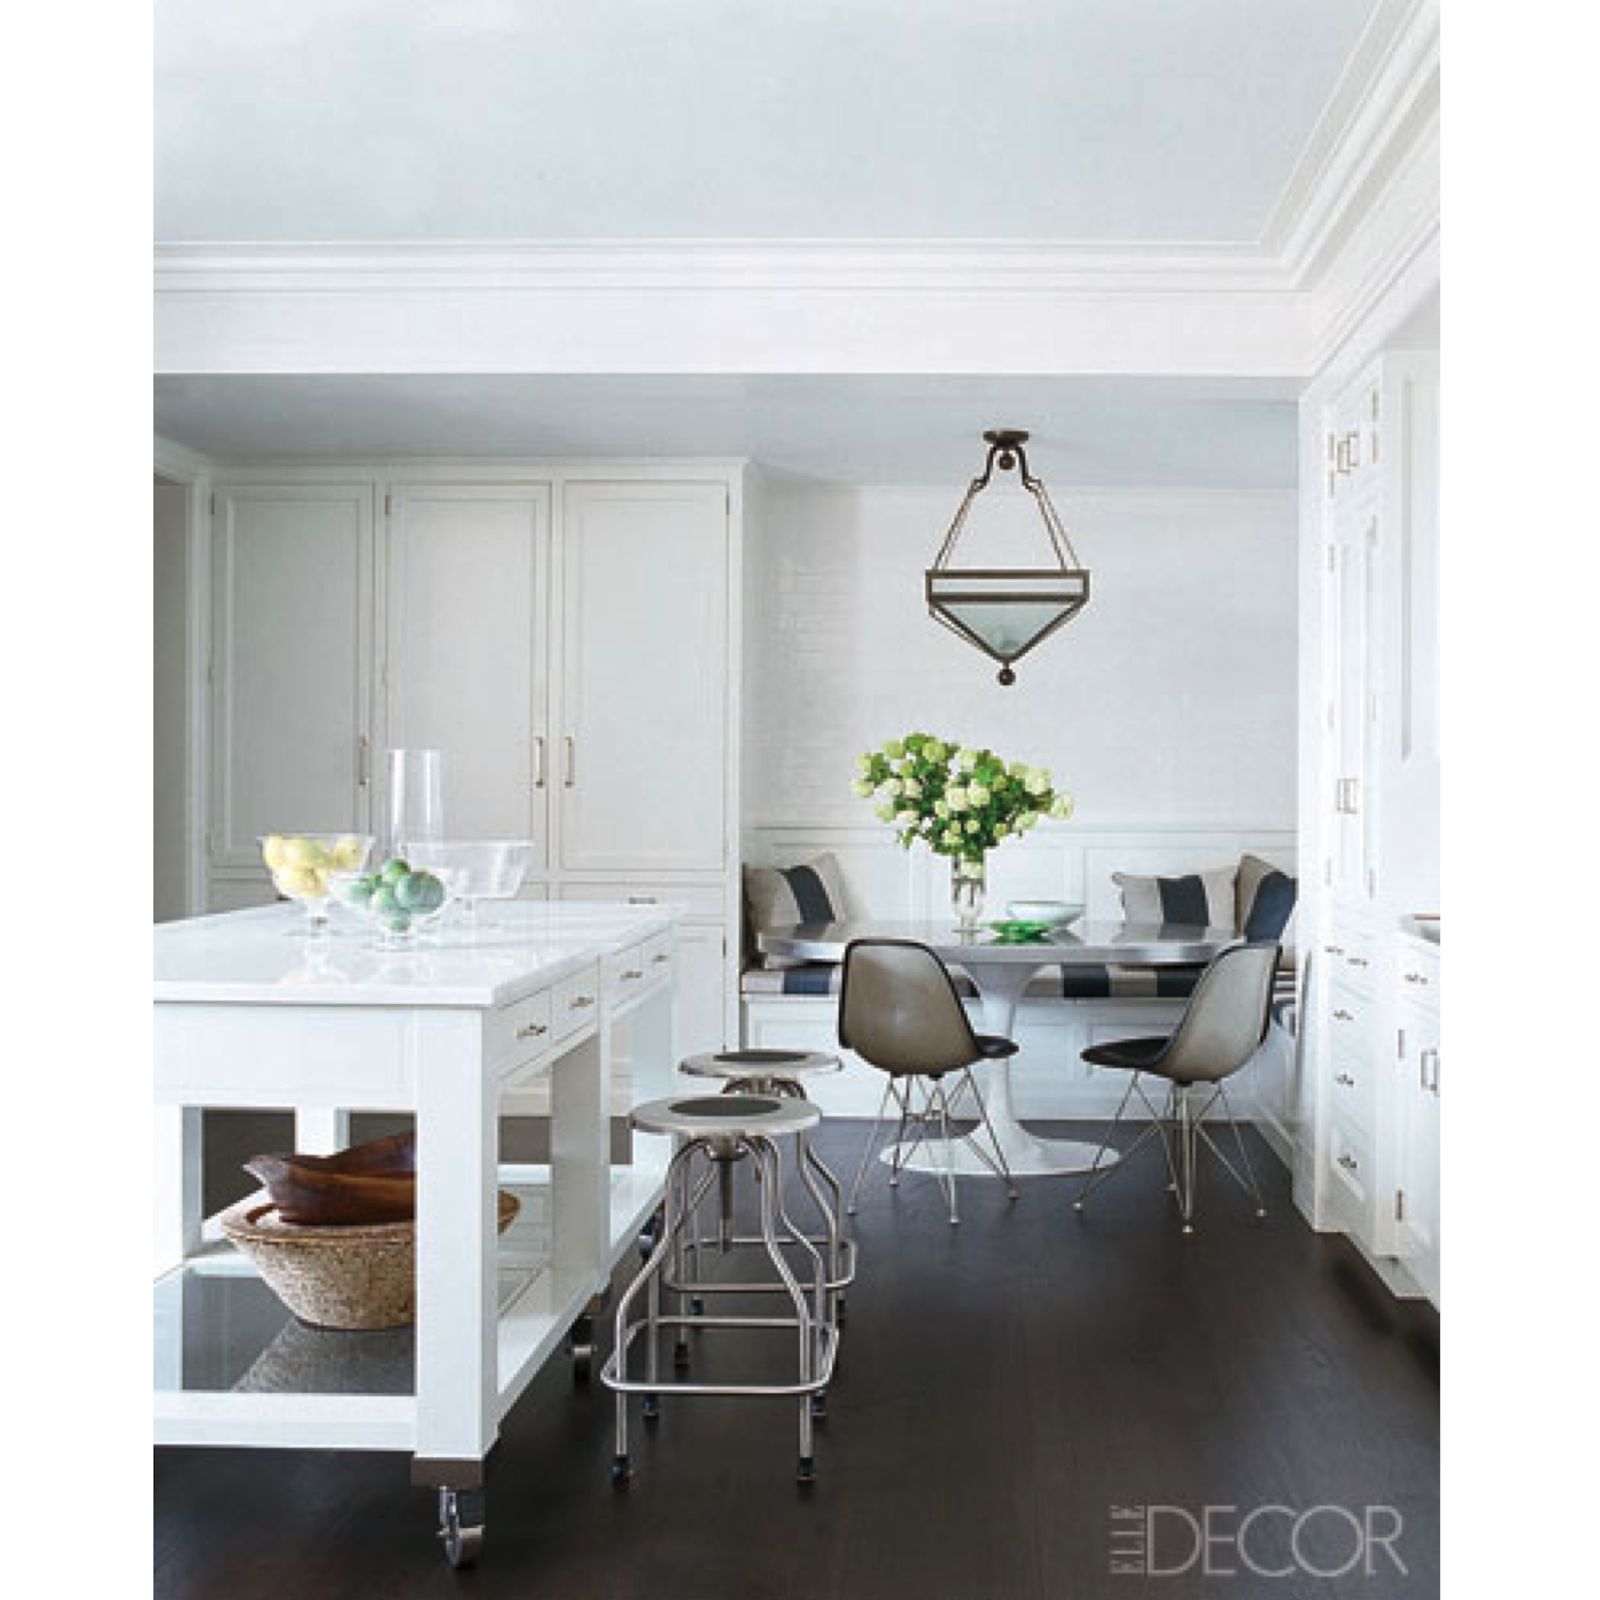 Rolling Island, Elle Decor